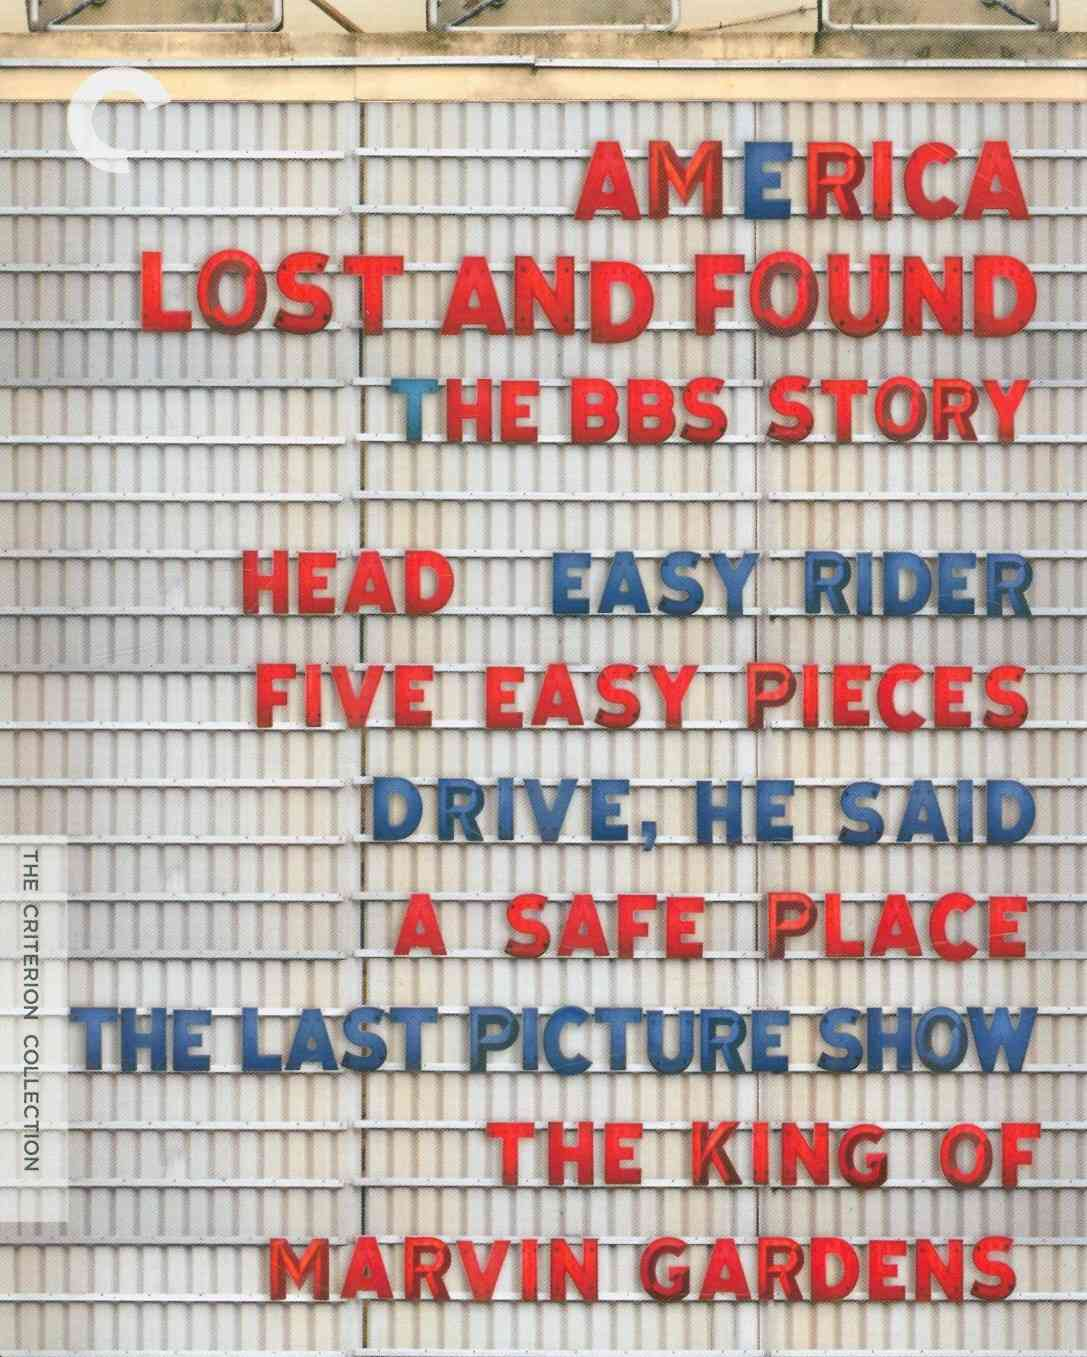 AMERICA LOST AND FOUND:BBS STORY (Blu-Ray)